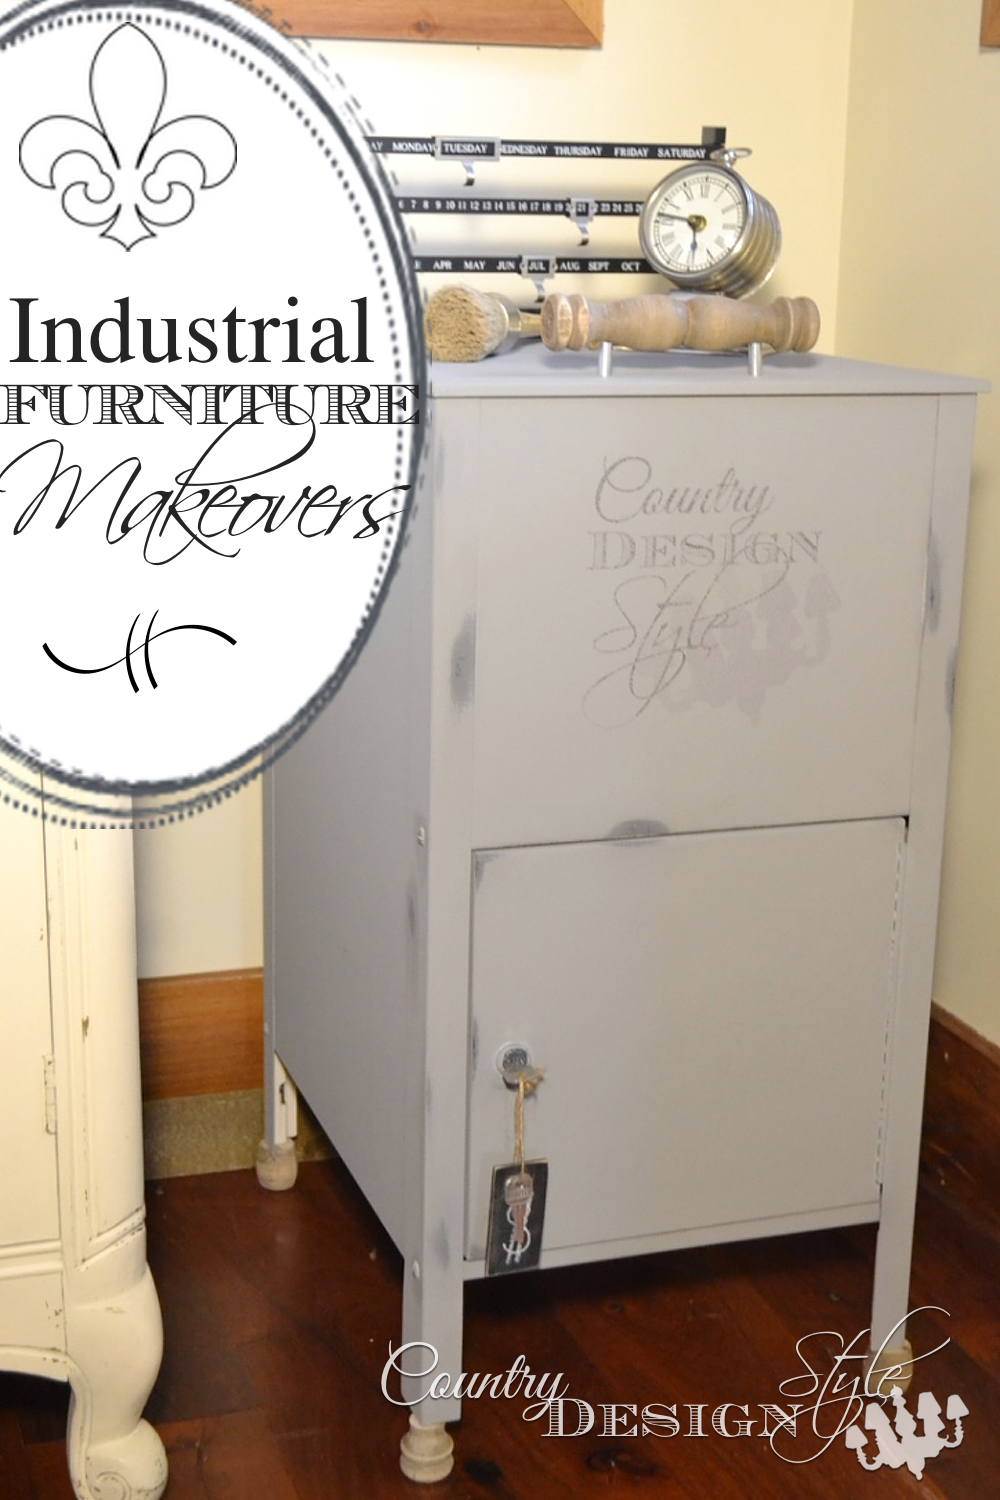 Industrial furniture makeovers. Click to get inspired to update furniture to industrial farmhouse style with these easy DIY tips. Country Design Style